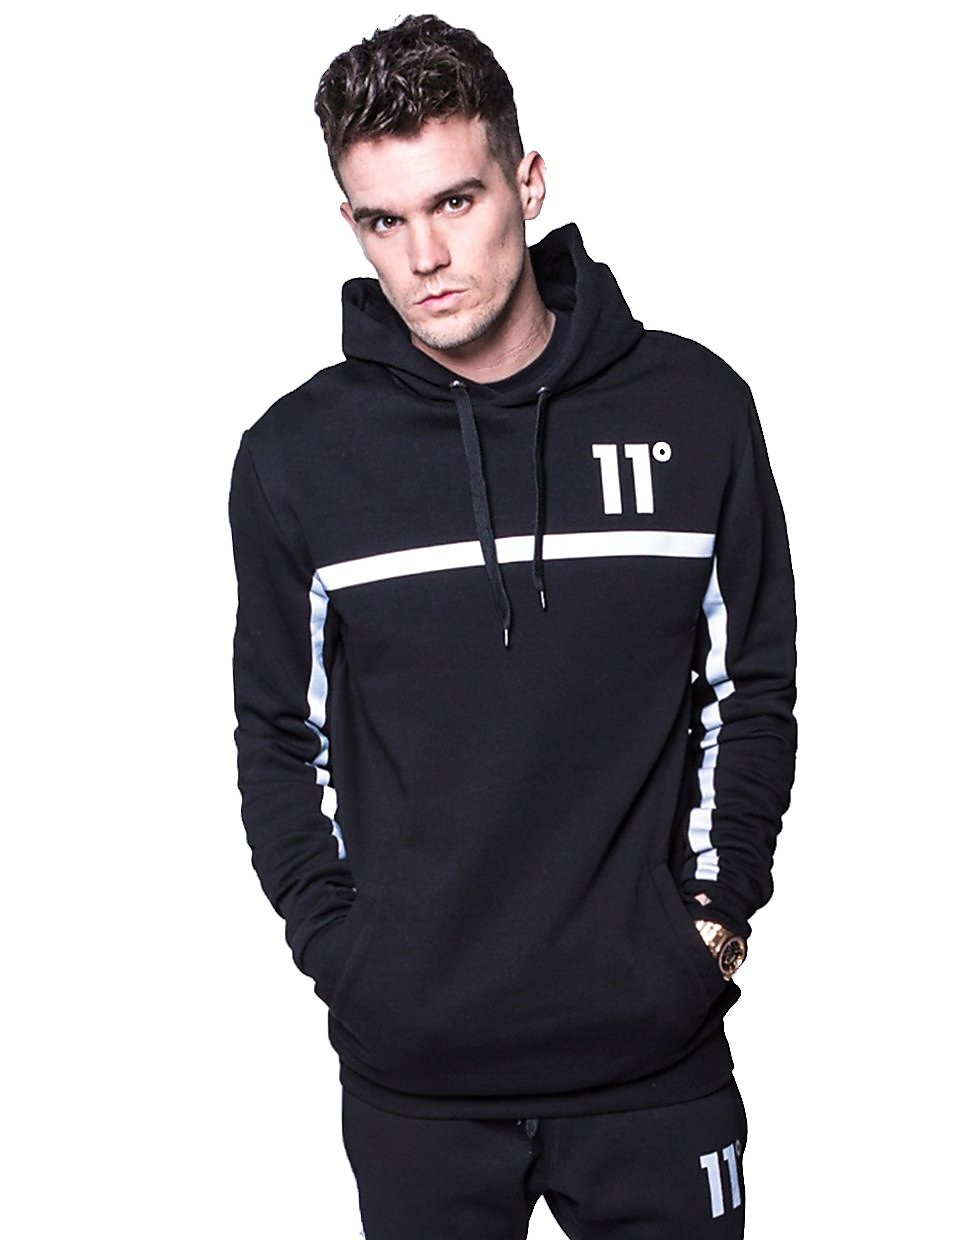 11 Degrees Reflective Centre Tape Pullover Hoody